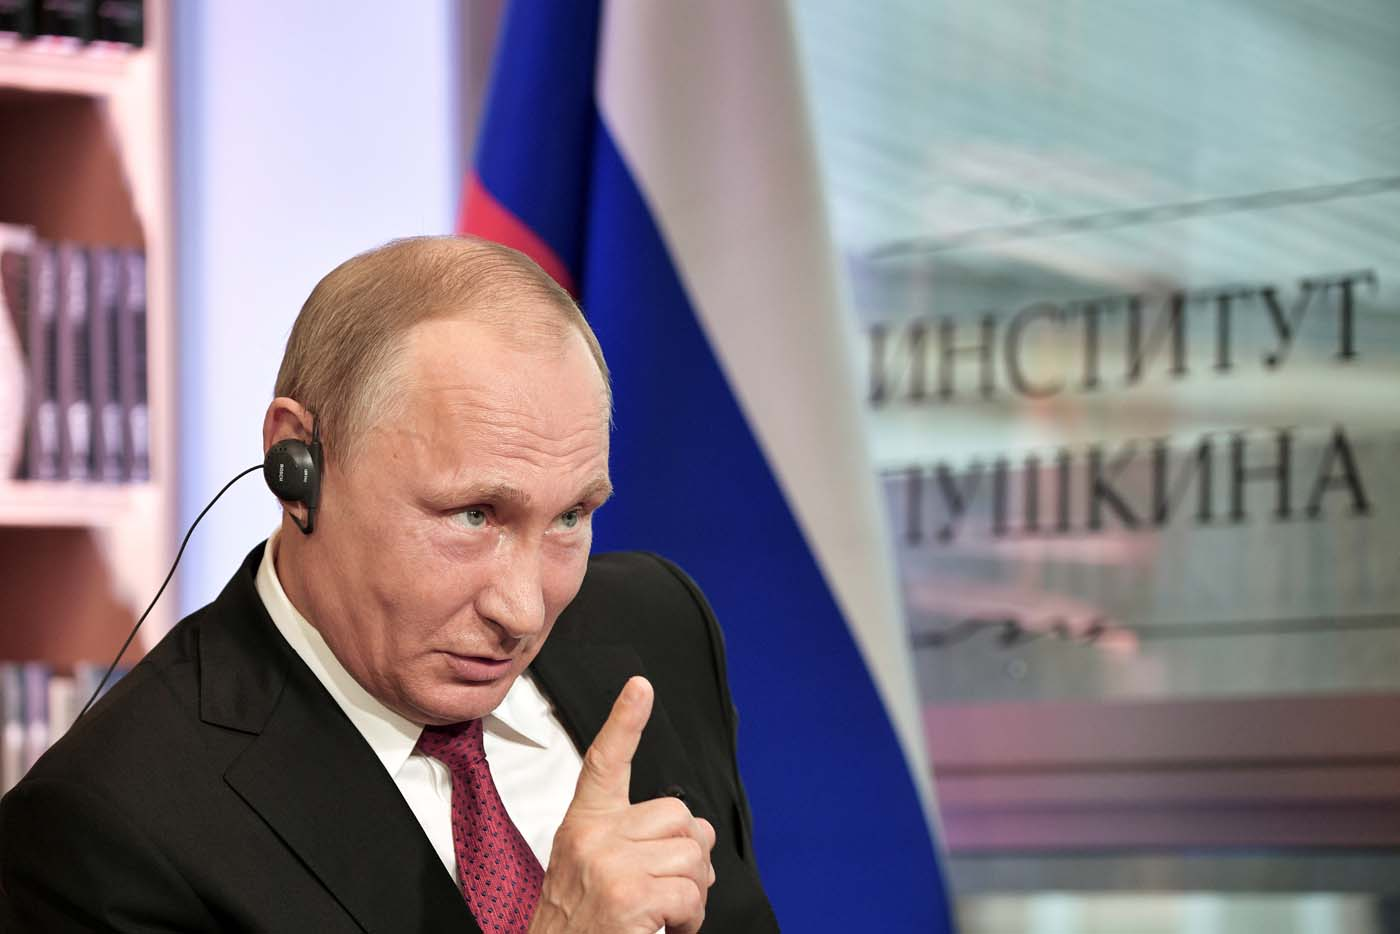 Russian President Vladimir Putin gestures during an interview with French daily newspaper Le Figaro in Paris, France May 29, 2017. Picture taken May 29, 2017. Sputnik/Aleksey Nikolskyi/Kremlin via REUTERS ATTENTION EDITORS - THIS IMAGE WAS PROVIDED BY A THIRD PARTY. EDITORIAL USE ONLY.     TPX IMAGES OF THE DAY